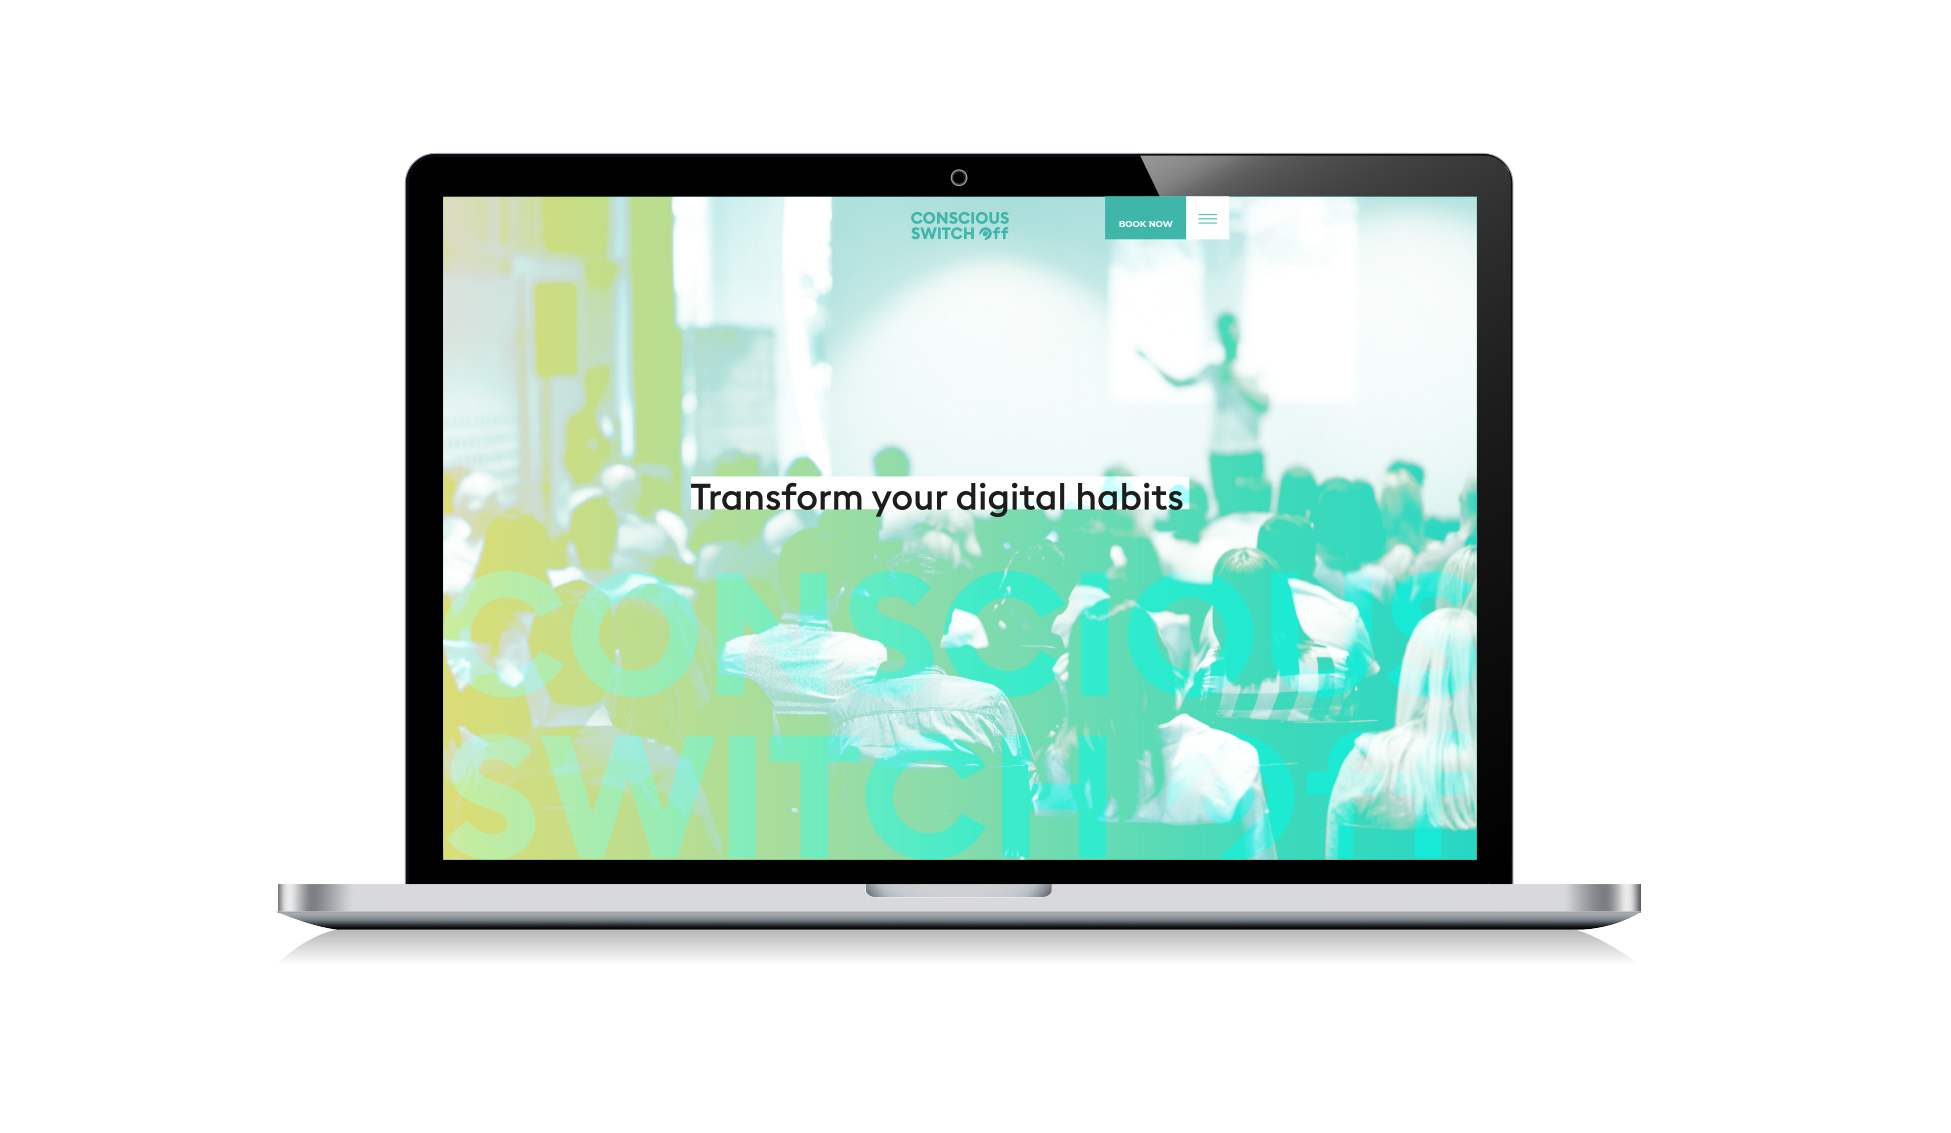 Transform your digital habits - website mock up